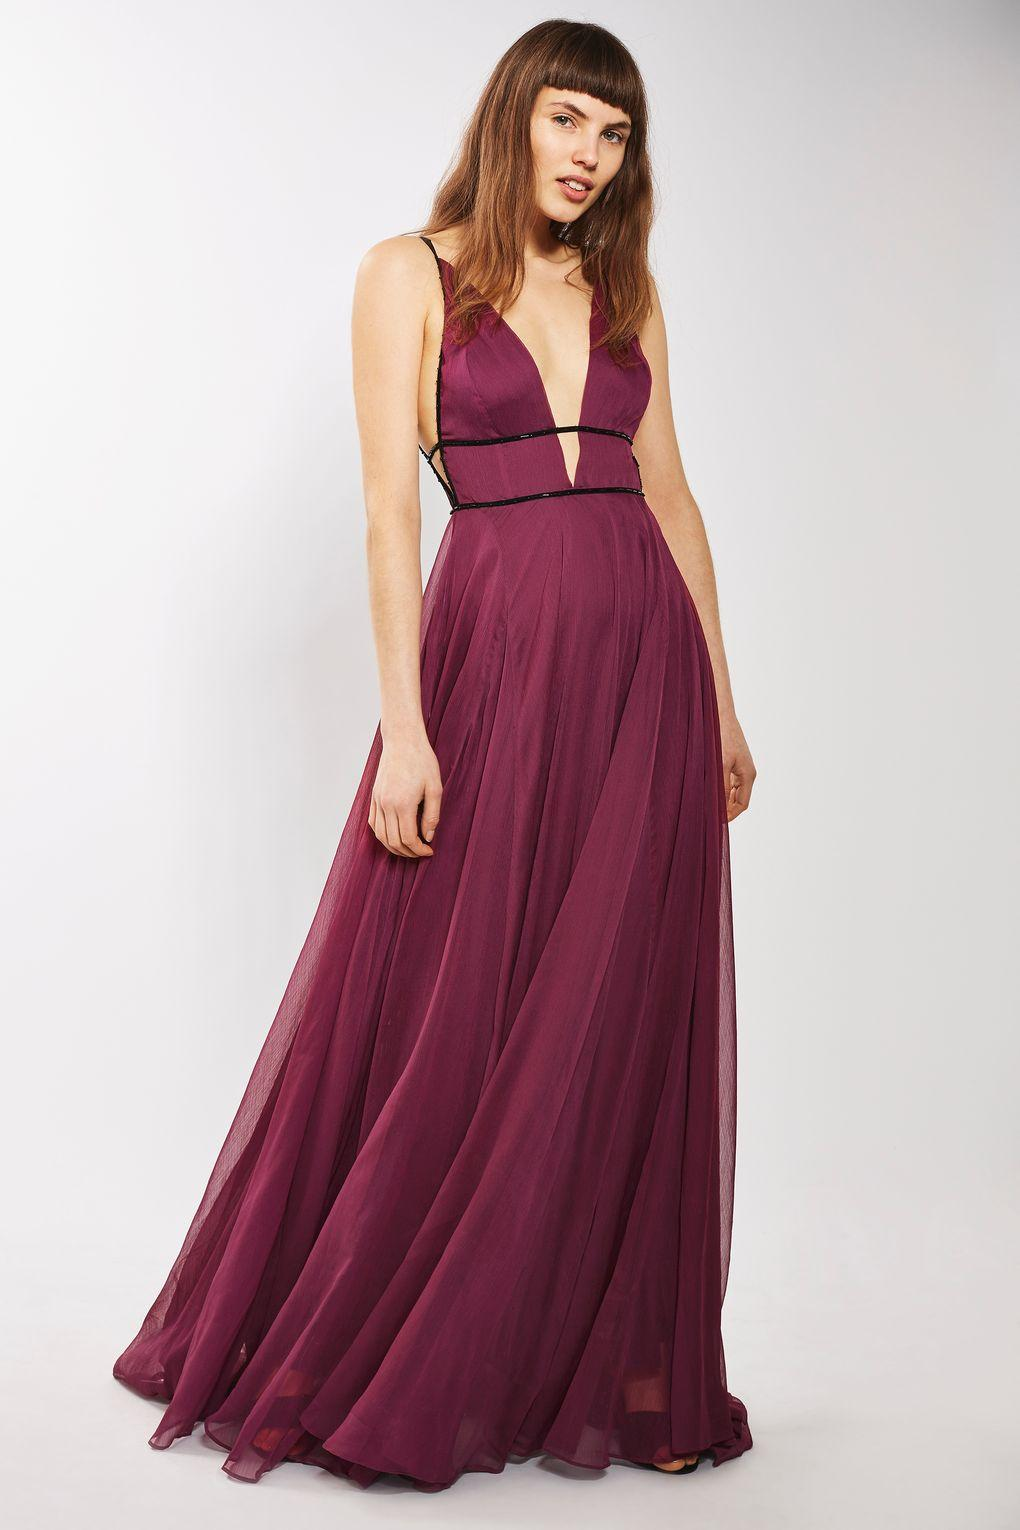 Topshop Chiffon Beaded Maxi Dress In Purple Lyst